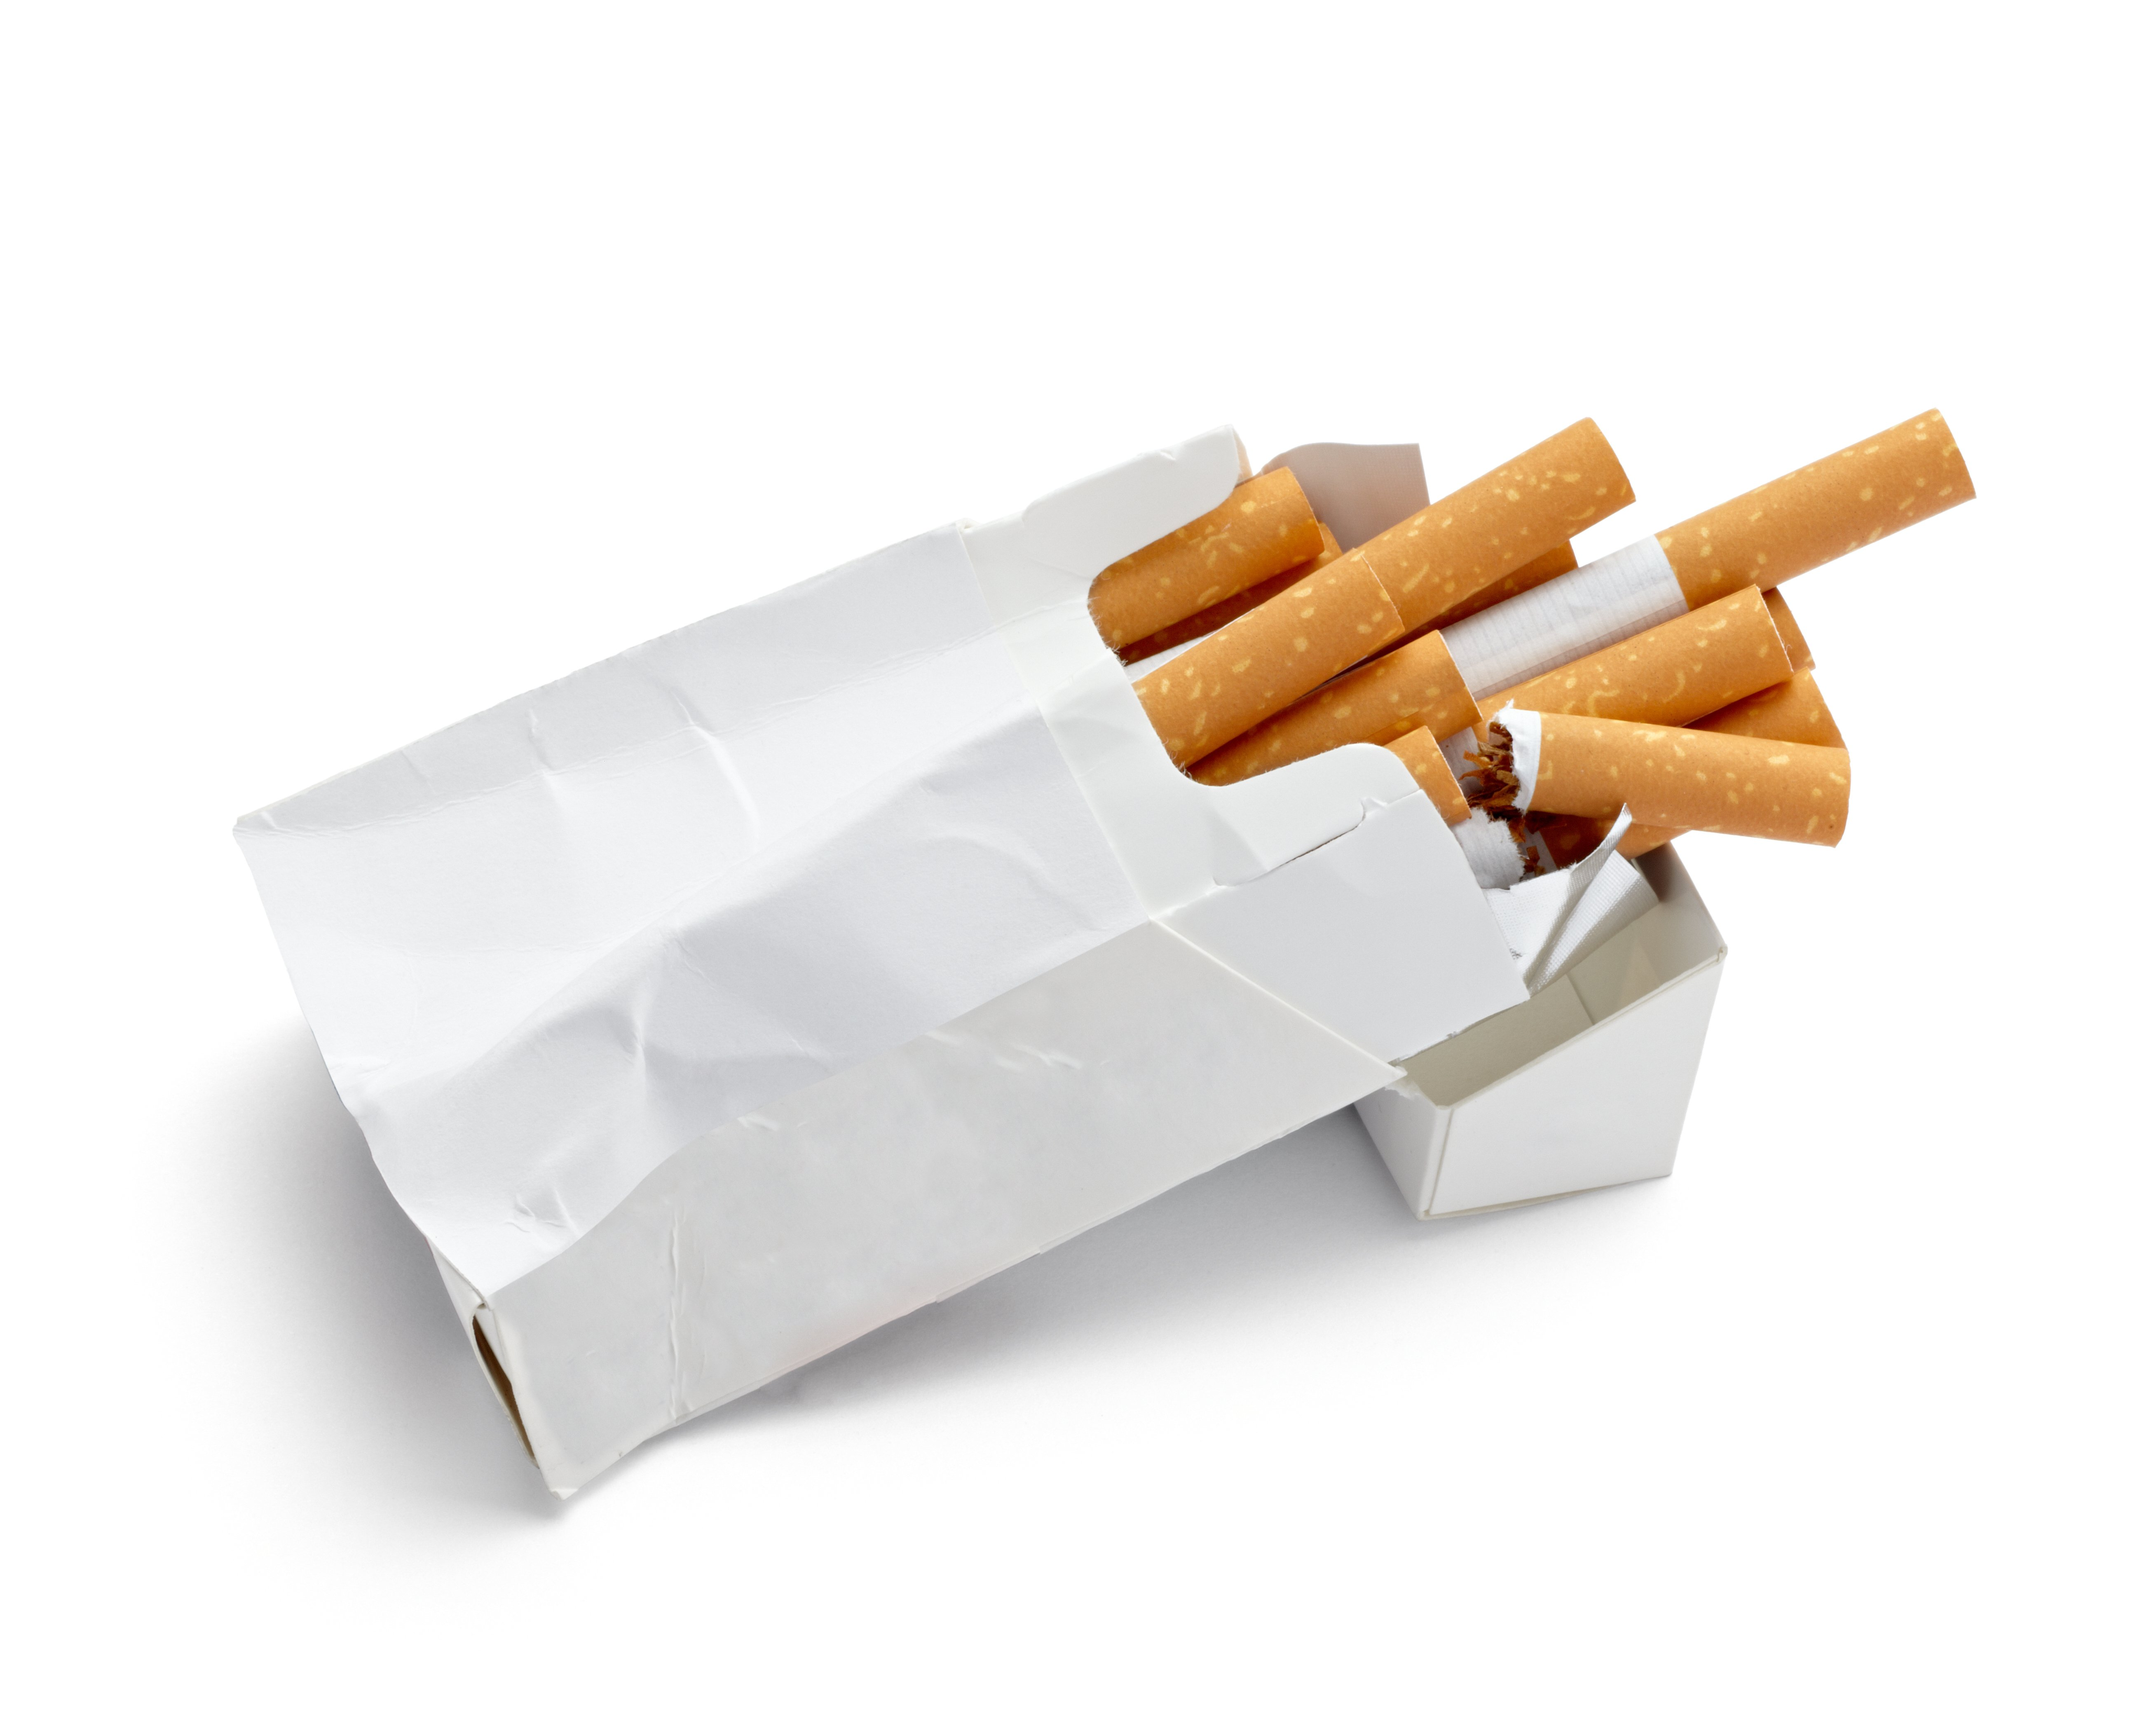 close up of a trashed box of cigarettes on white background with clipp